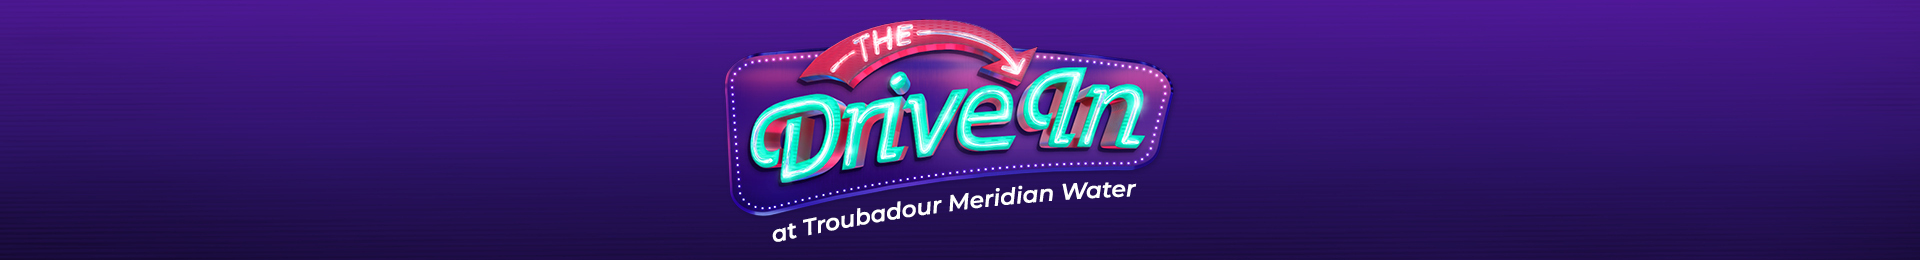 LIVE: The Drive In Comedy Night - 3rd August banner image